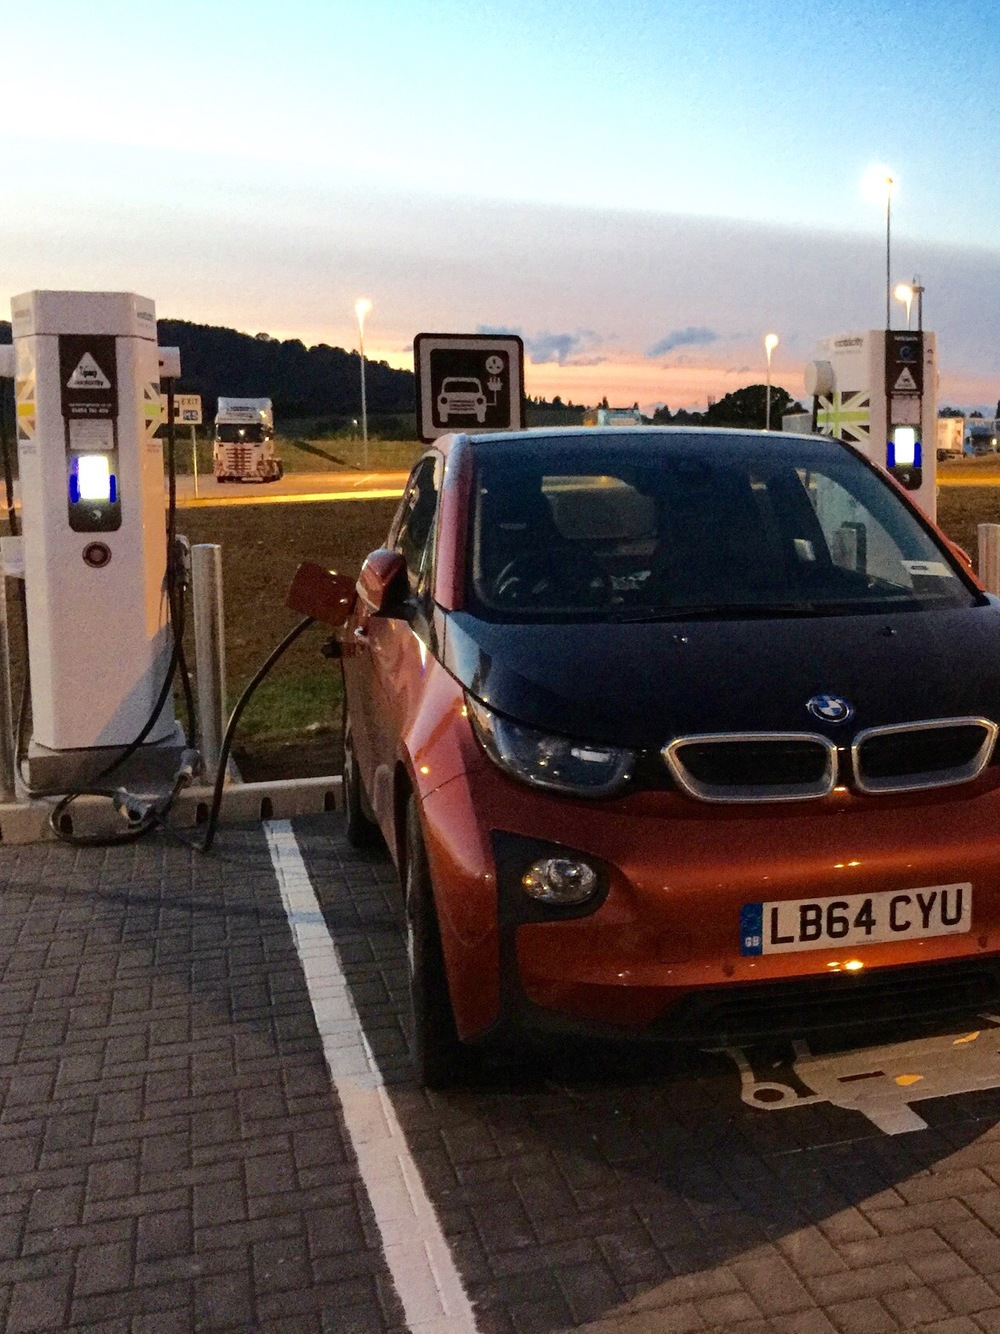 Charging at Gloucester Services